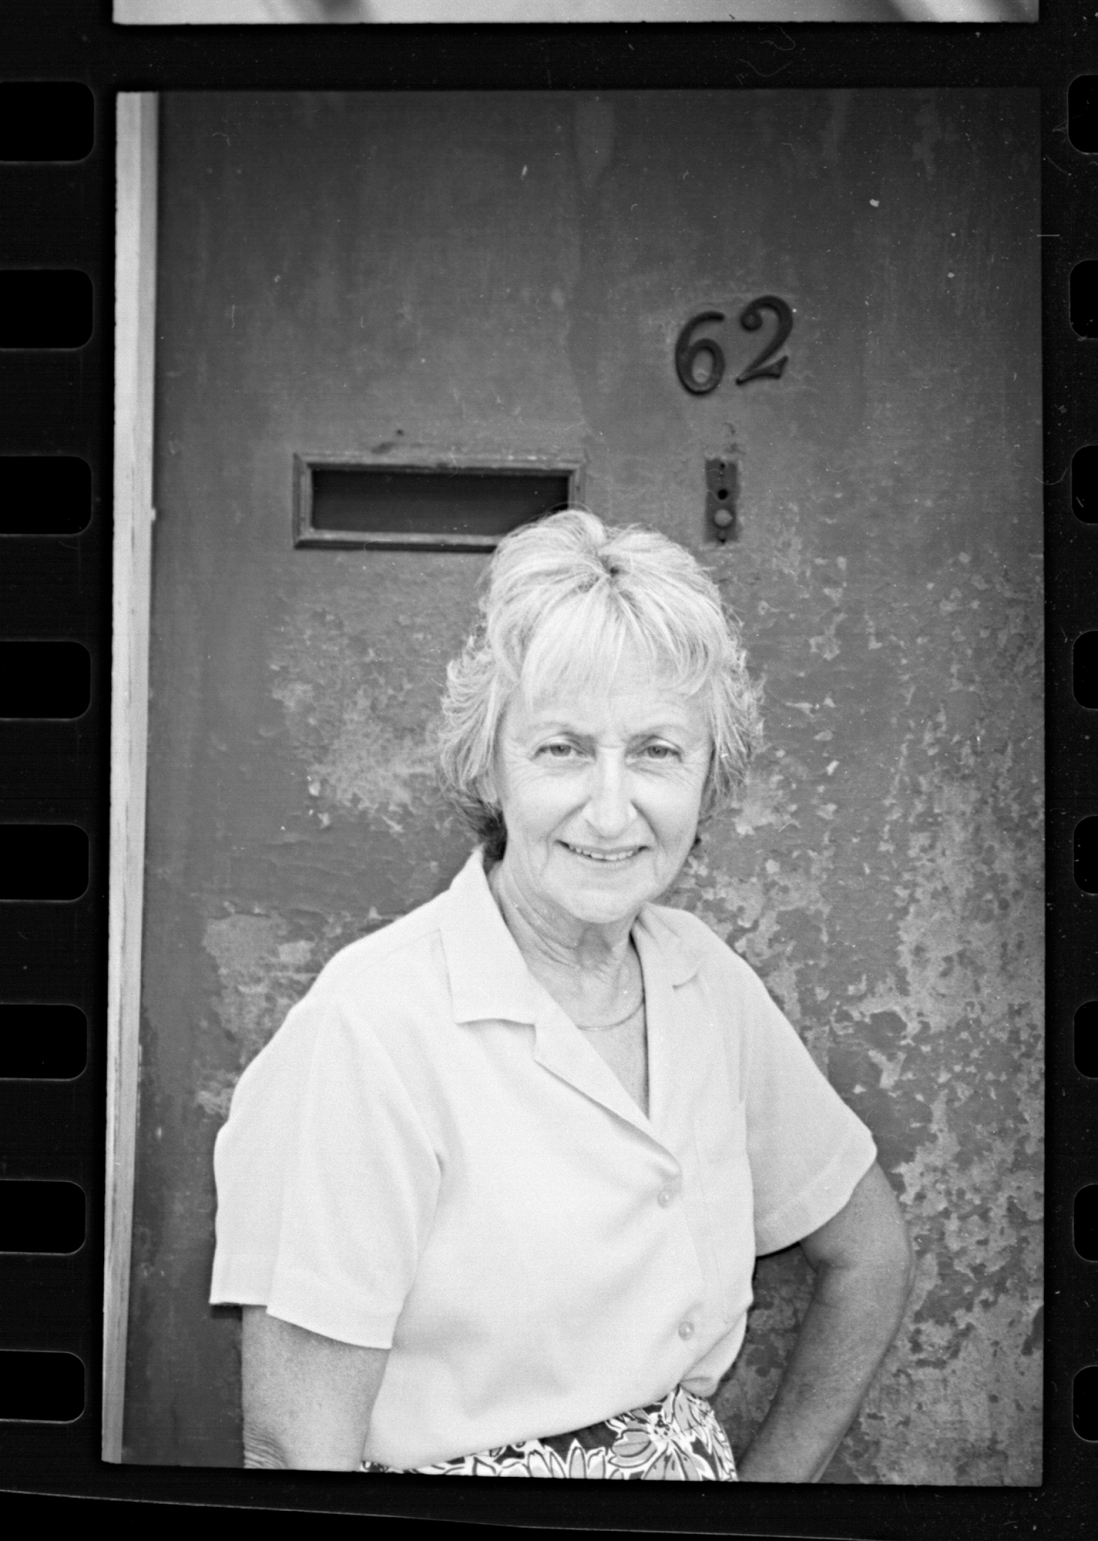 Black and white photo of woman outside doorway with the number 62 visible above her head.